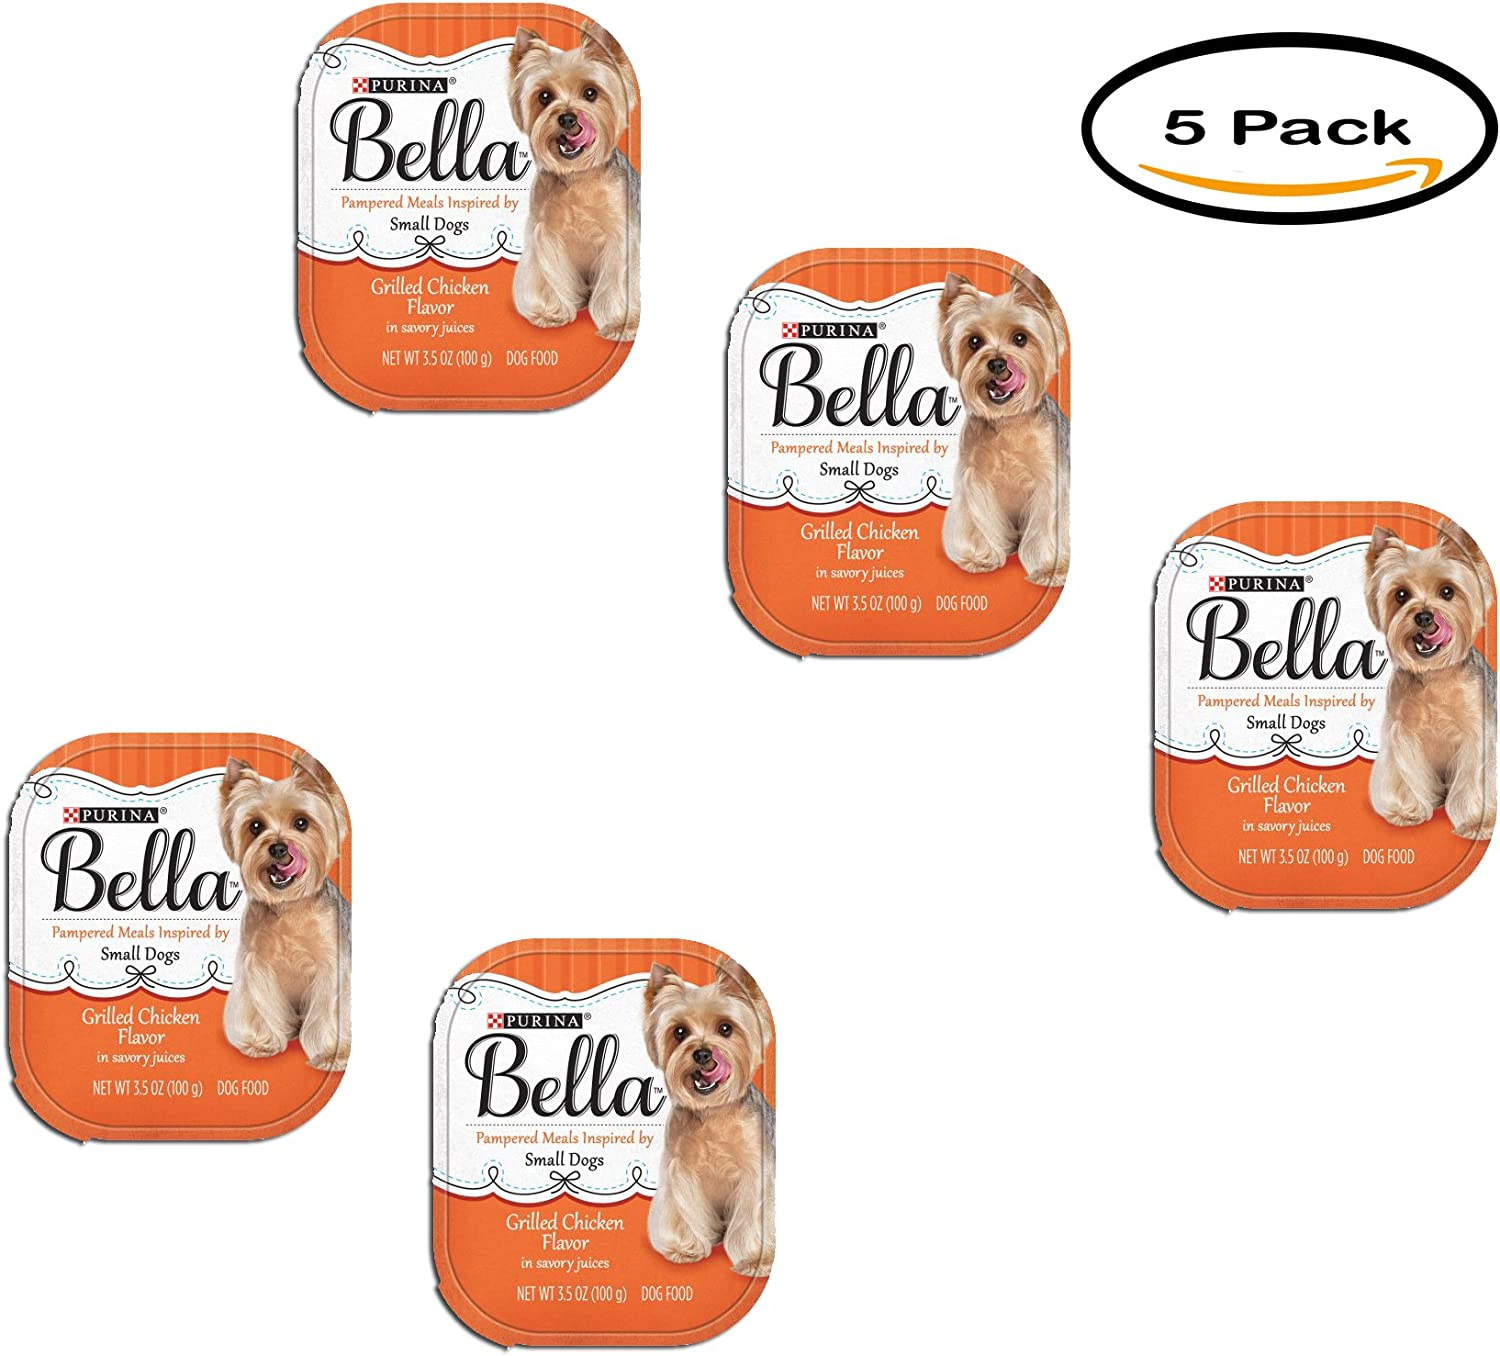 PACK OF 5 - Purina Bella Grilled Chicken Flavor in Savory Juices Adult Wet Dog Food Case of 12- 3.5 oz. Trays